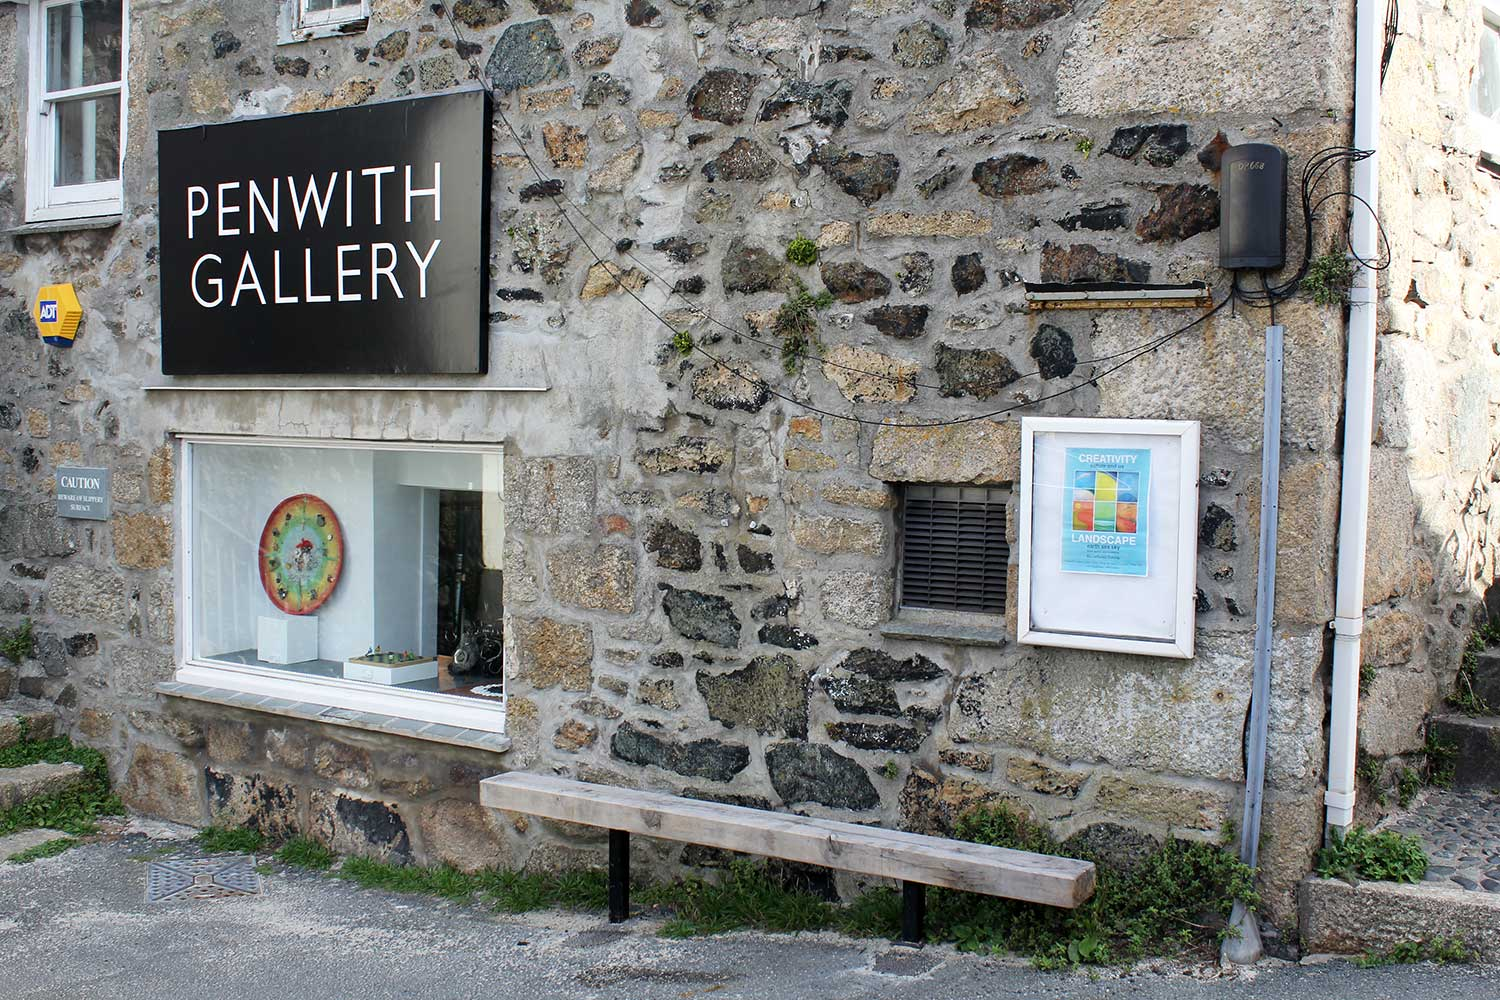 Penwith Gallery